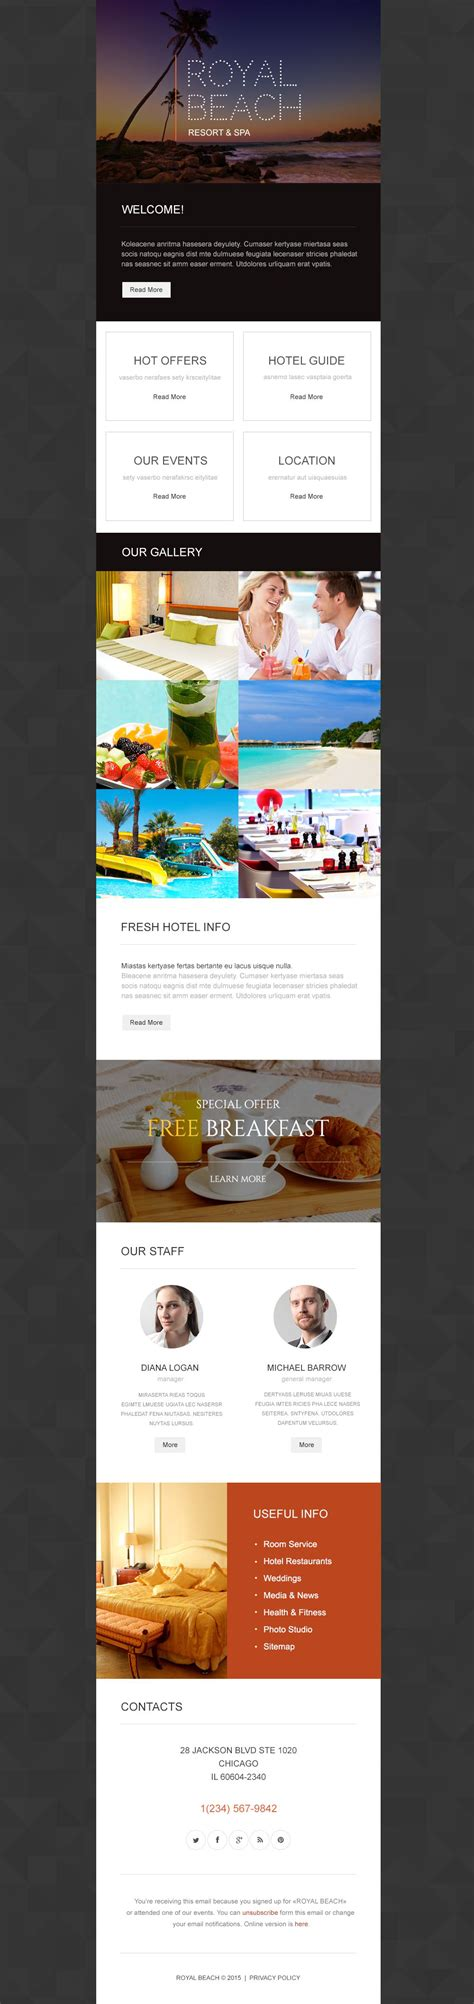 Free Responsive Newsletter Template travel agency responsive newsletter template 54550